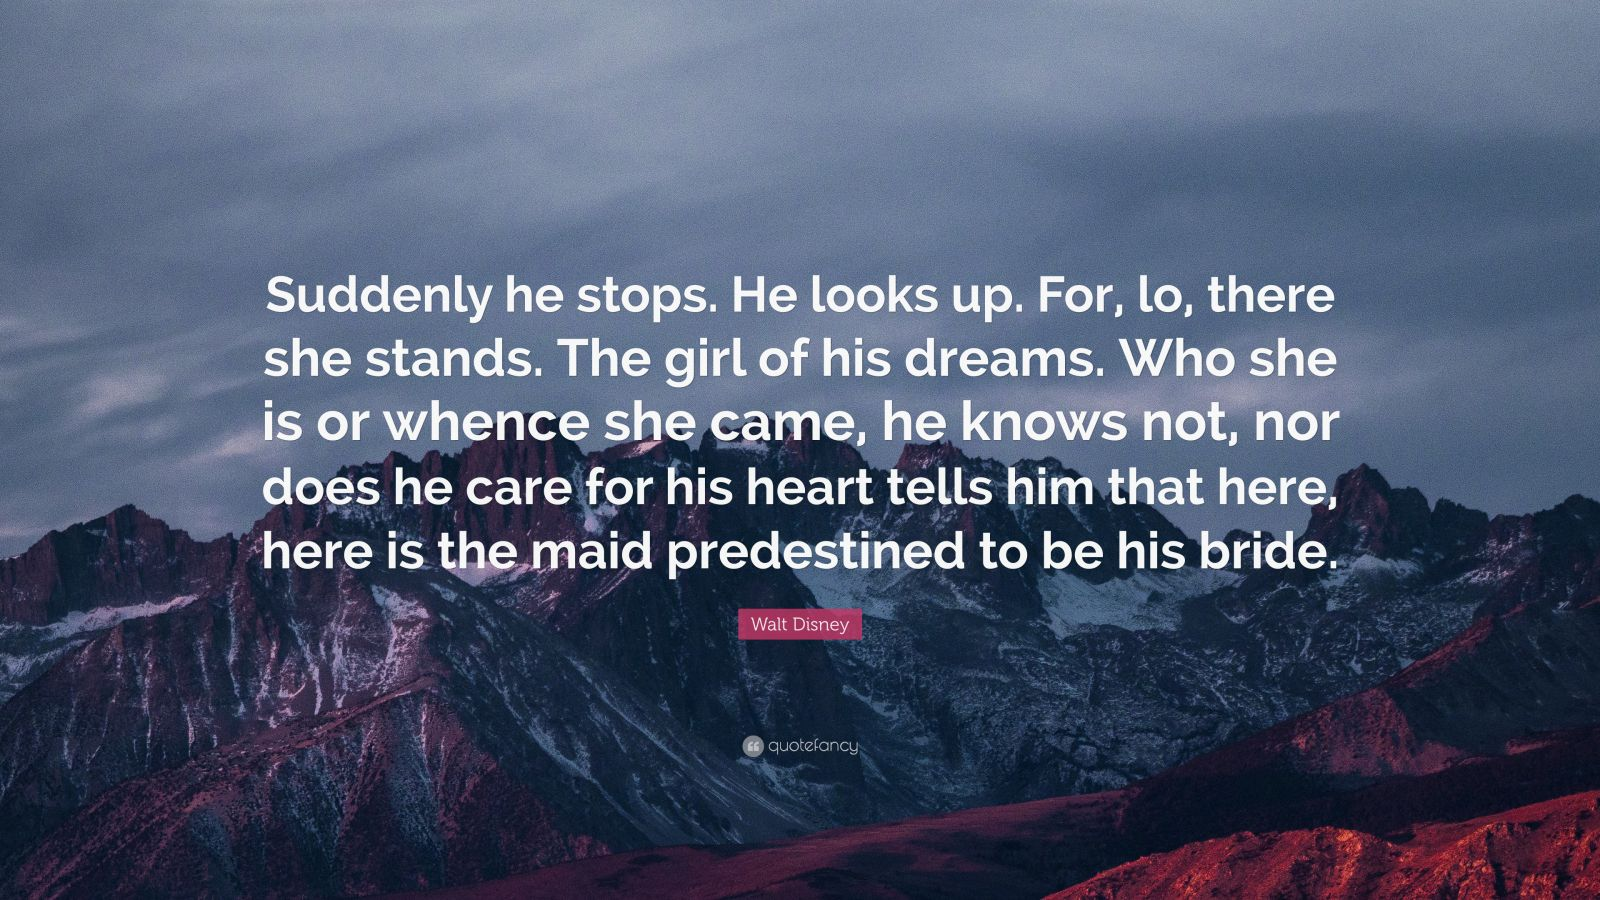 """Walt Disney Quote: """"Suddenly he stops. He looks up. For, lo, there she stands. The girl of his dreams. Who she is or whence she came, he knows not, nor does he care for his heart tells him that here, here is the maid predestined to be his bride."""""""